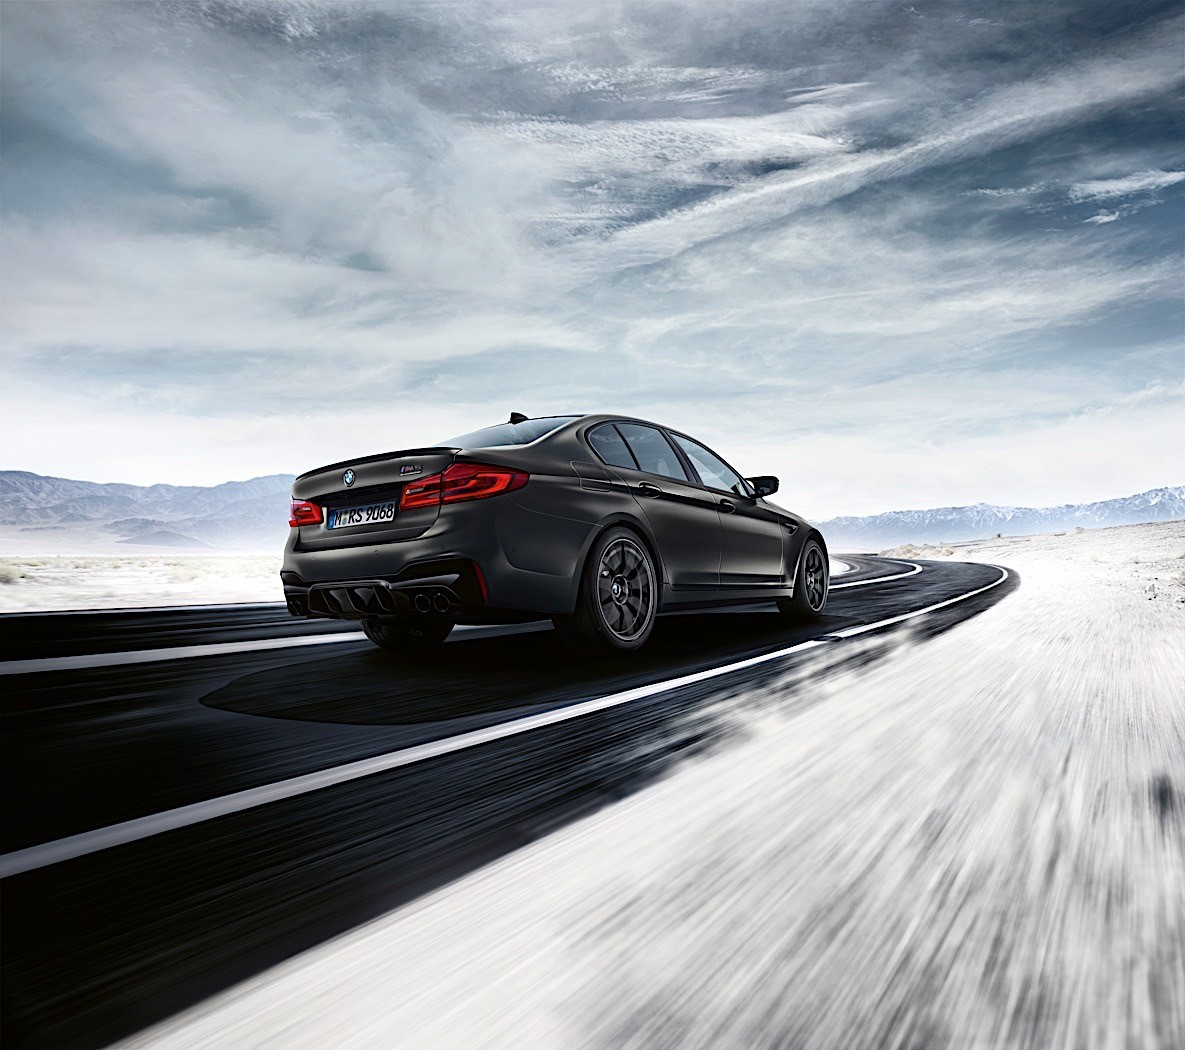 Bmw M5 Car: 2020 BMW M5 Edition 35 Jahre Takes Competition To New